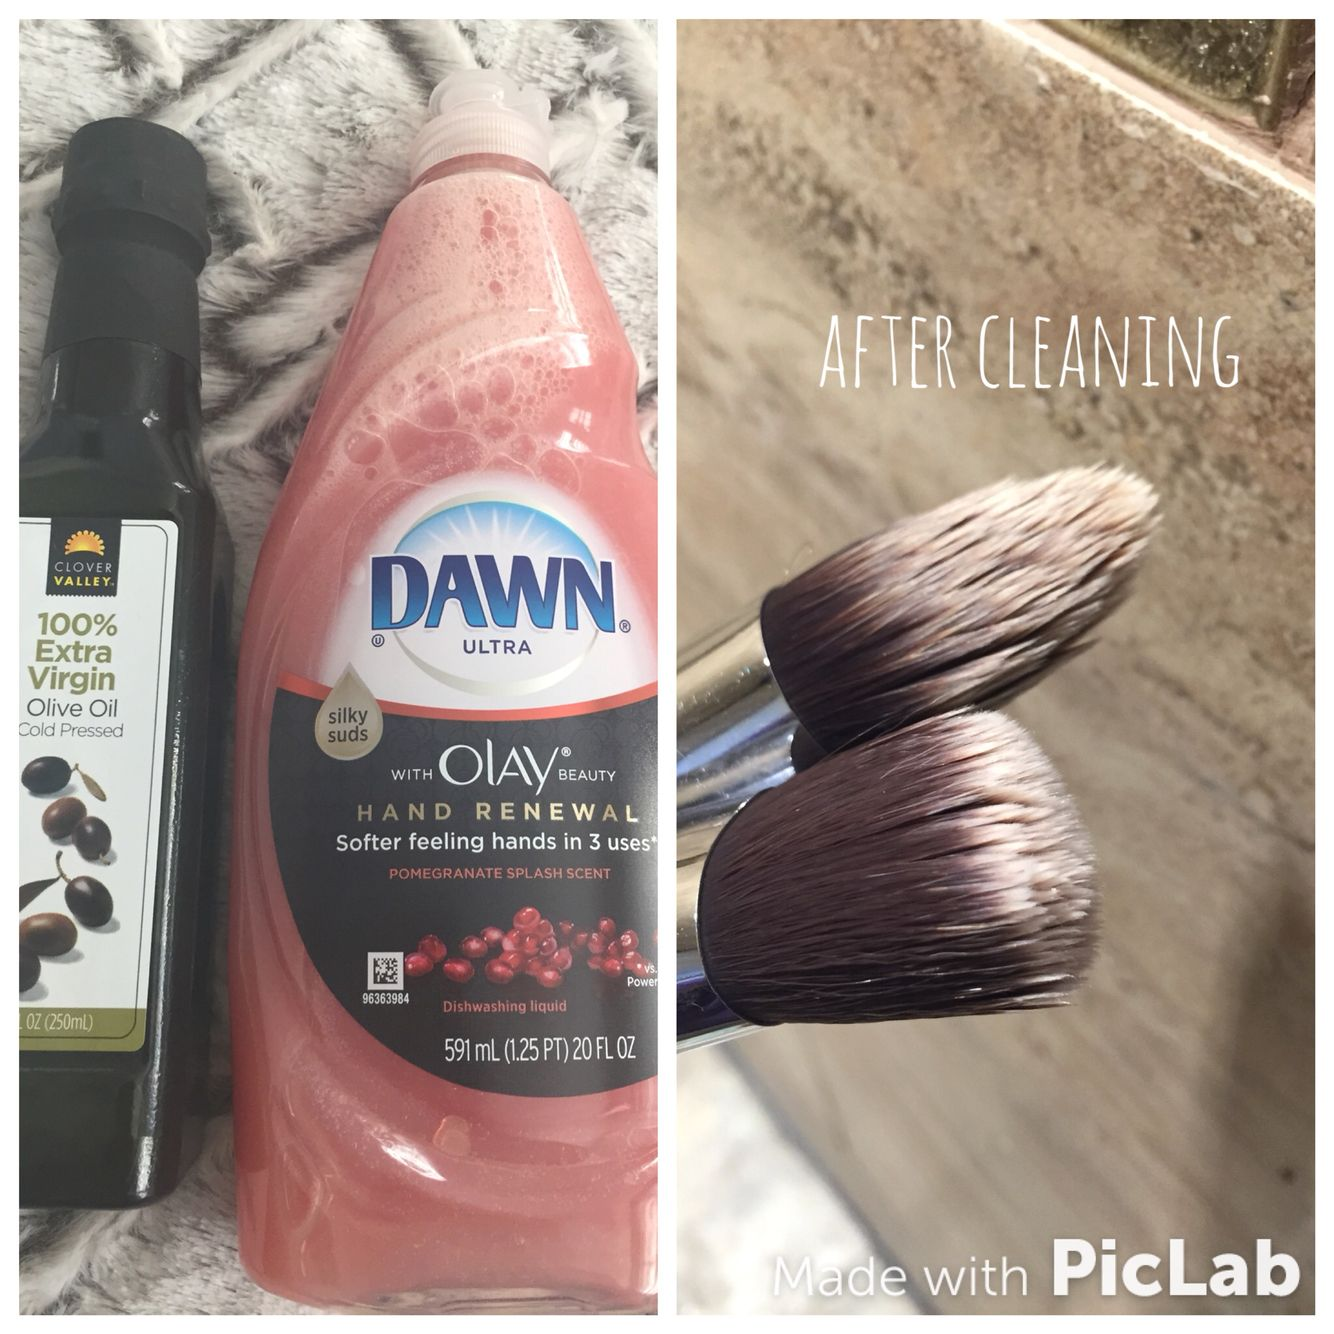 Olive oil and Dawn hand renewal, Olay dish soap